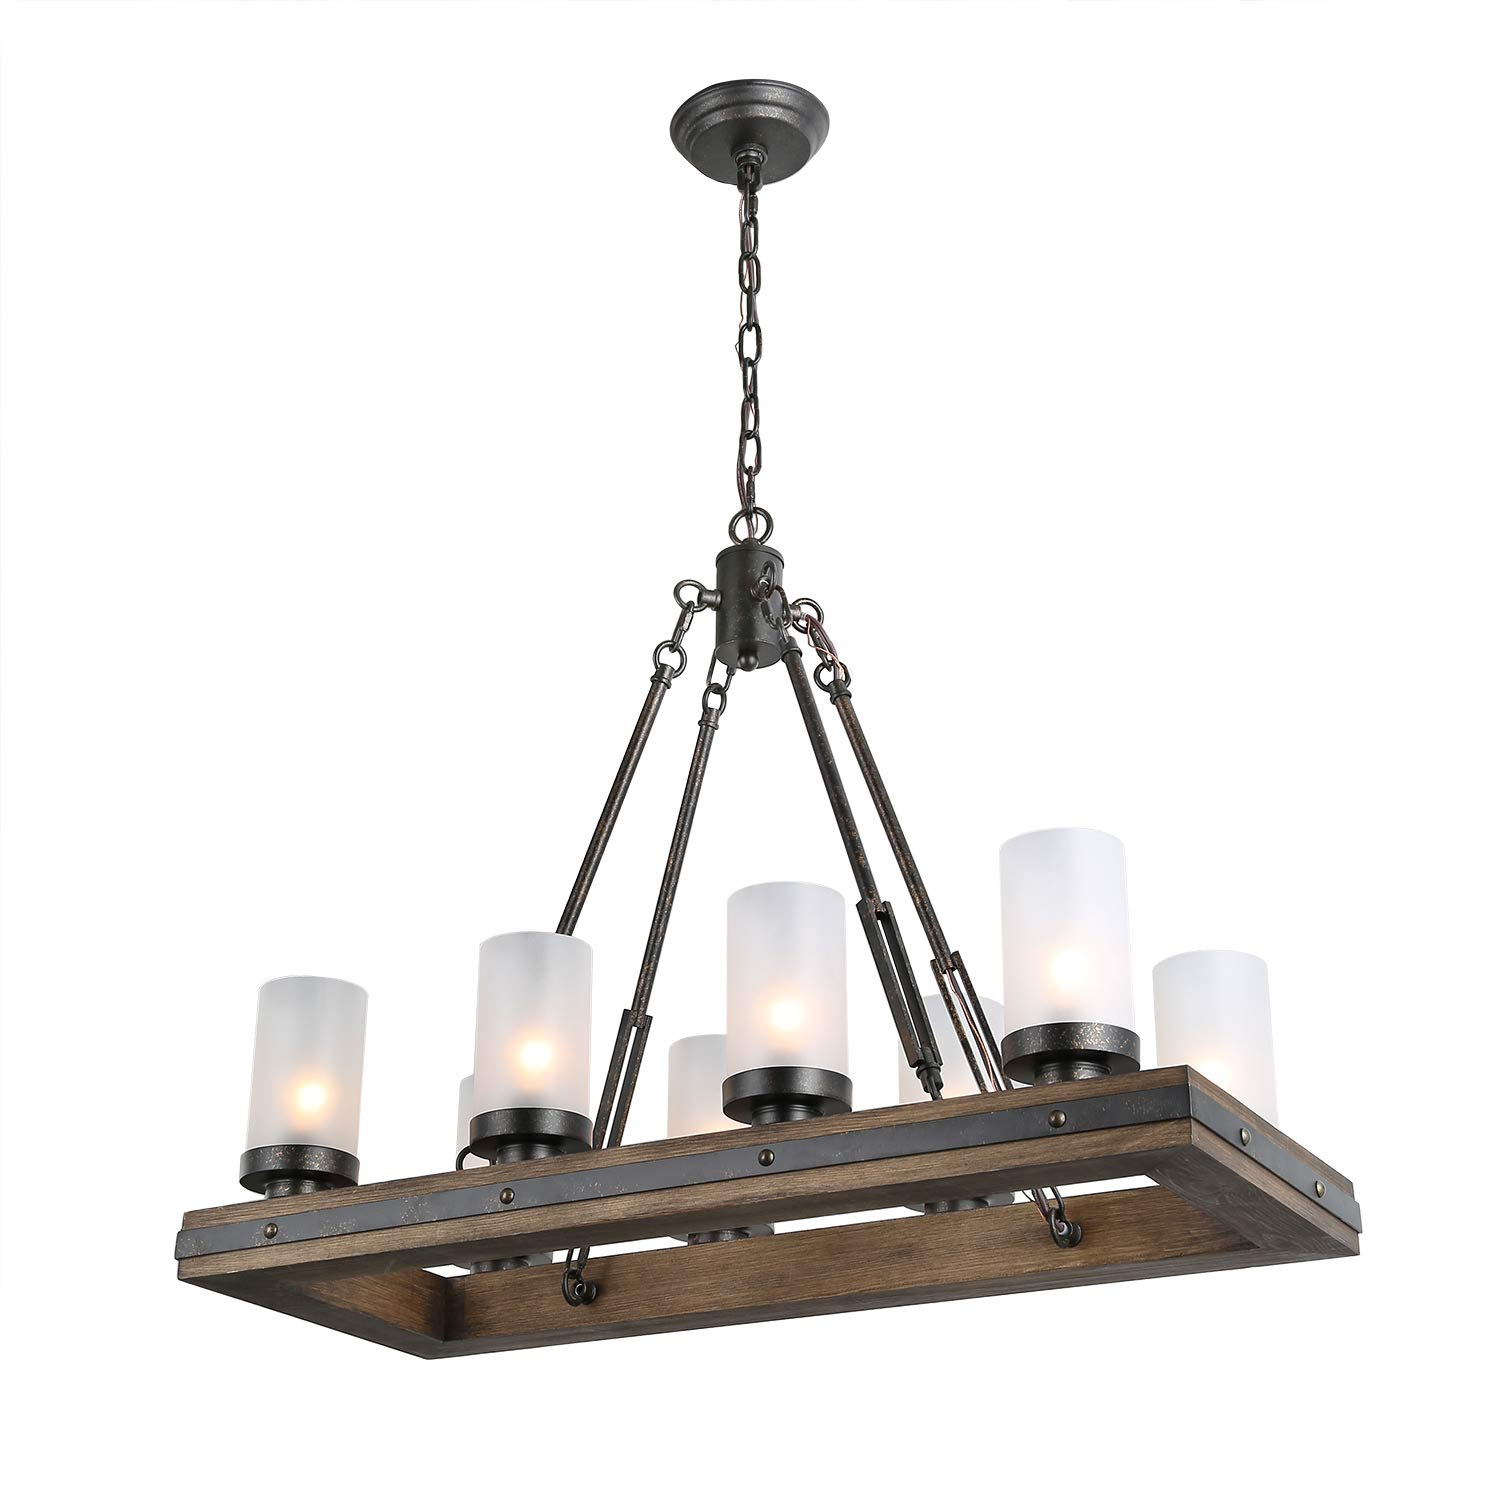 LNC Wood Island Light Rectangular Farmhouse Chandelier for Kitchen, Dining Room with 8 Frosted Glass Shades, Model A03487,